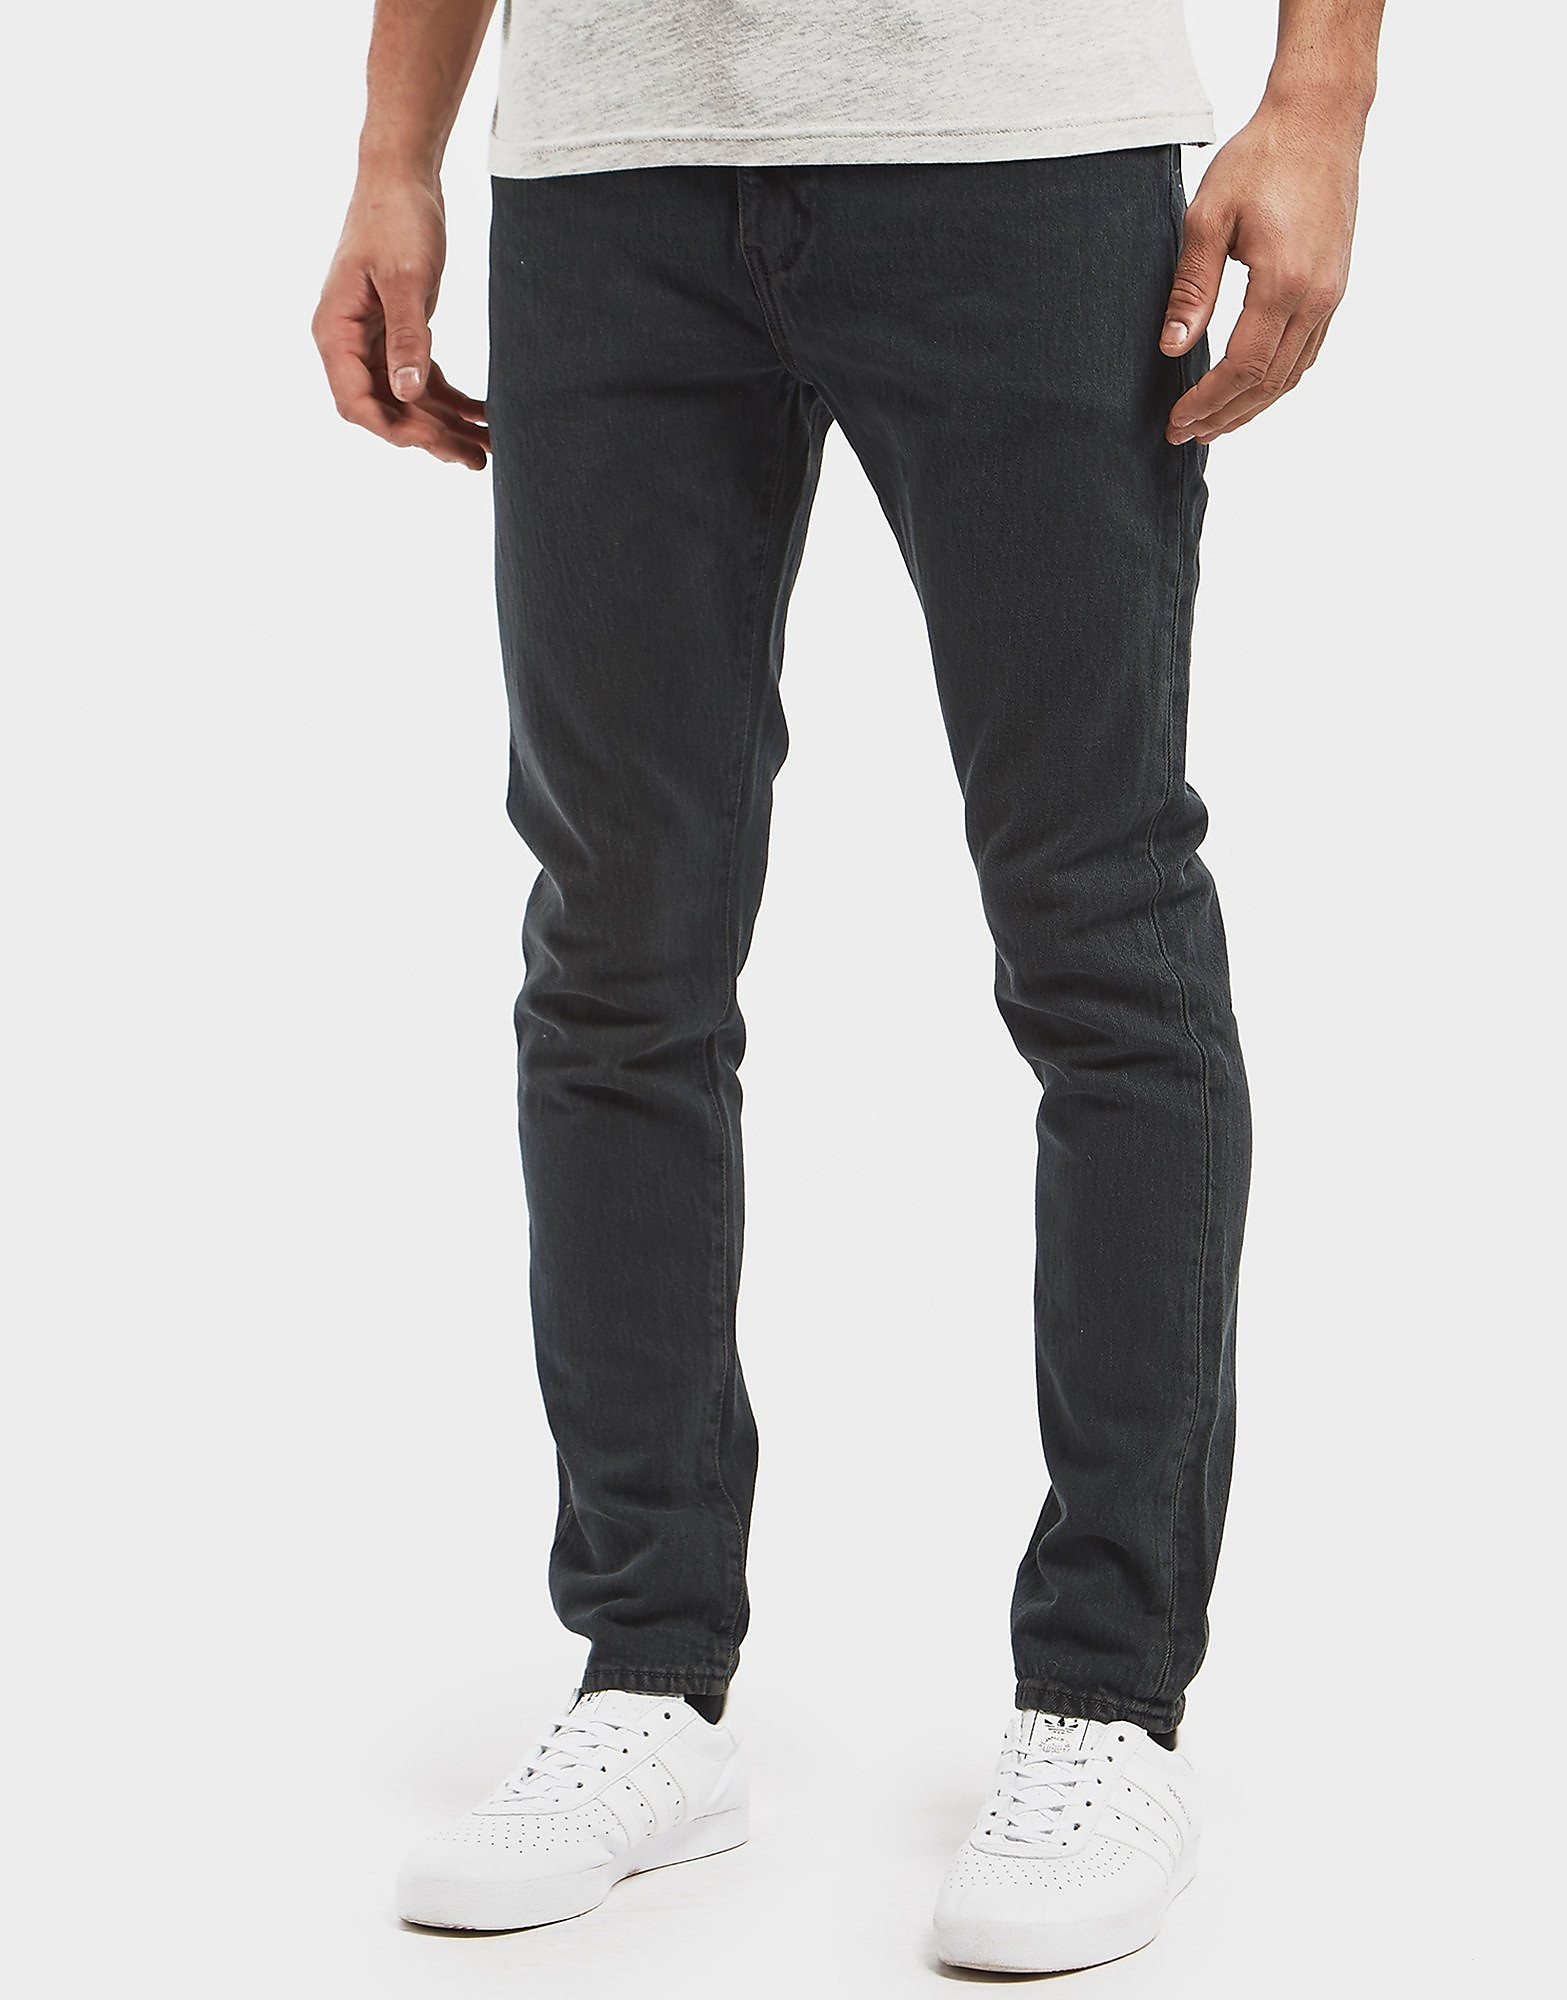 Levis 512 Slim Tapered Jeans